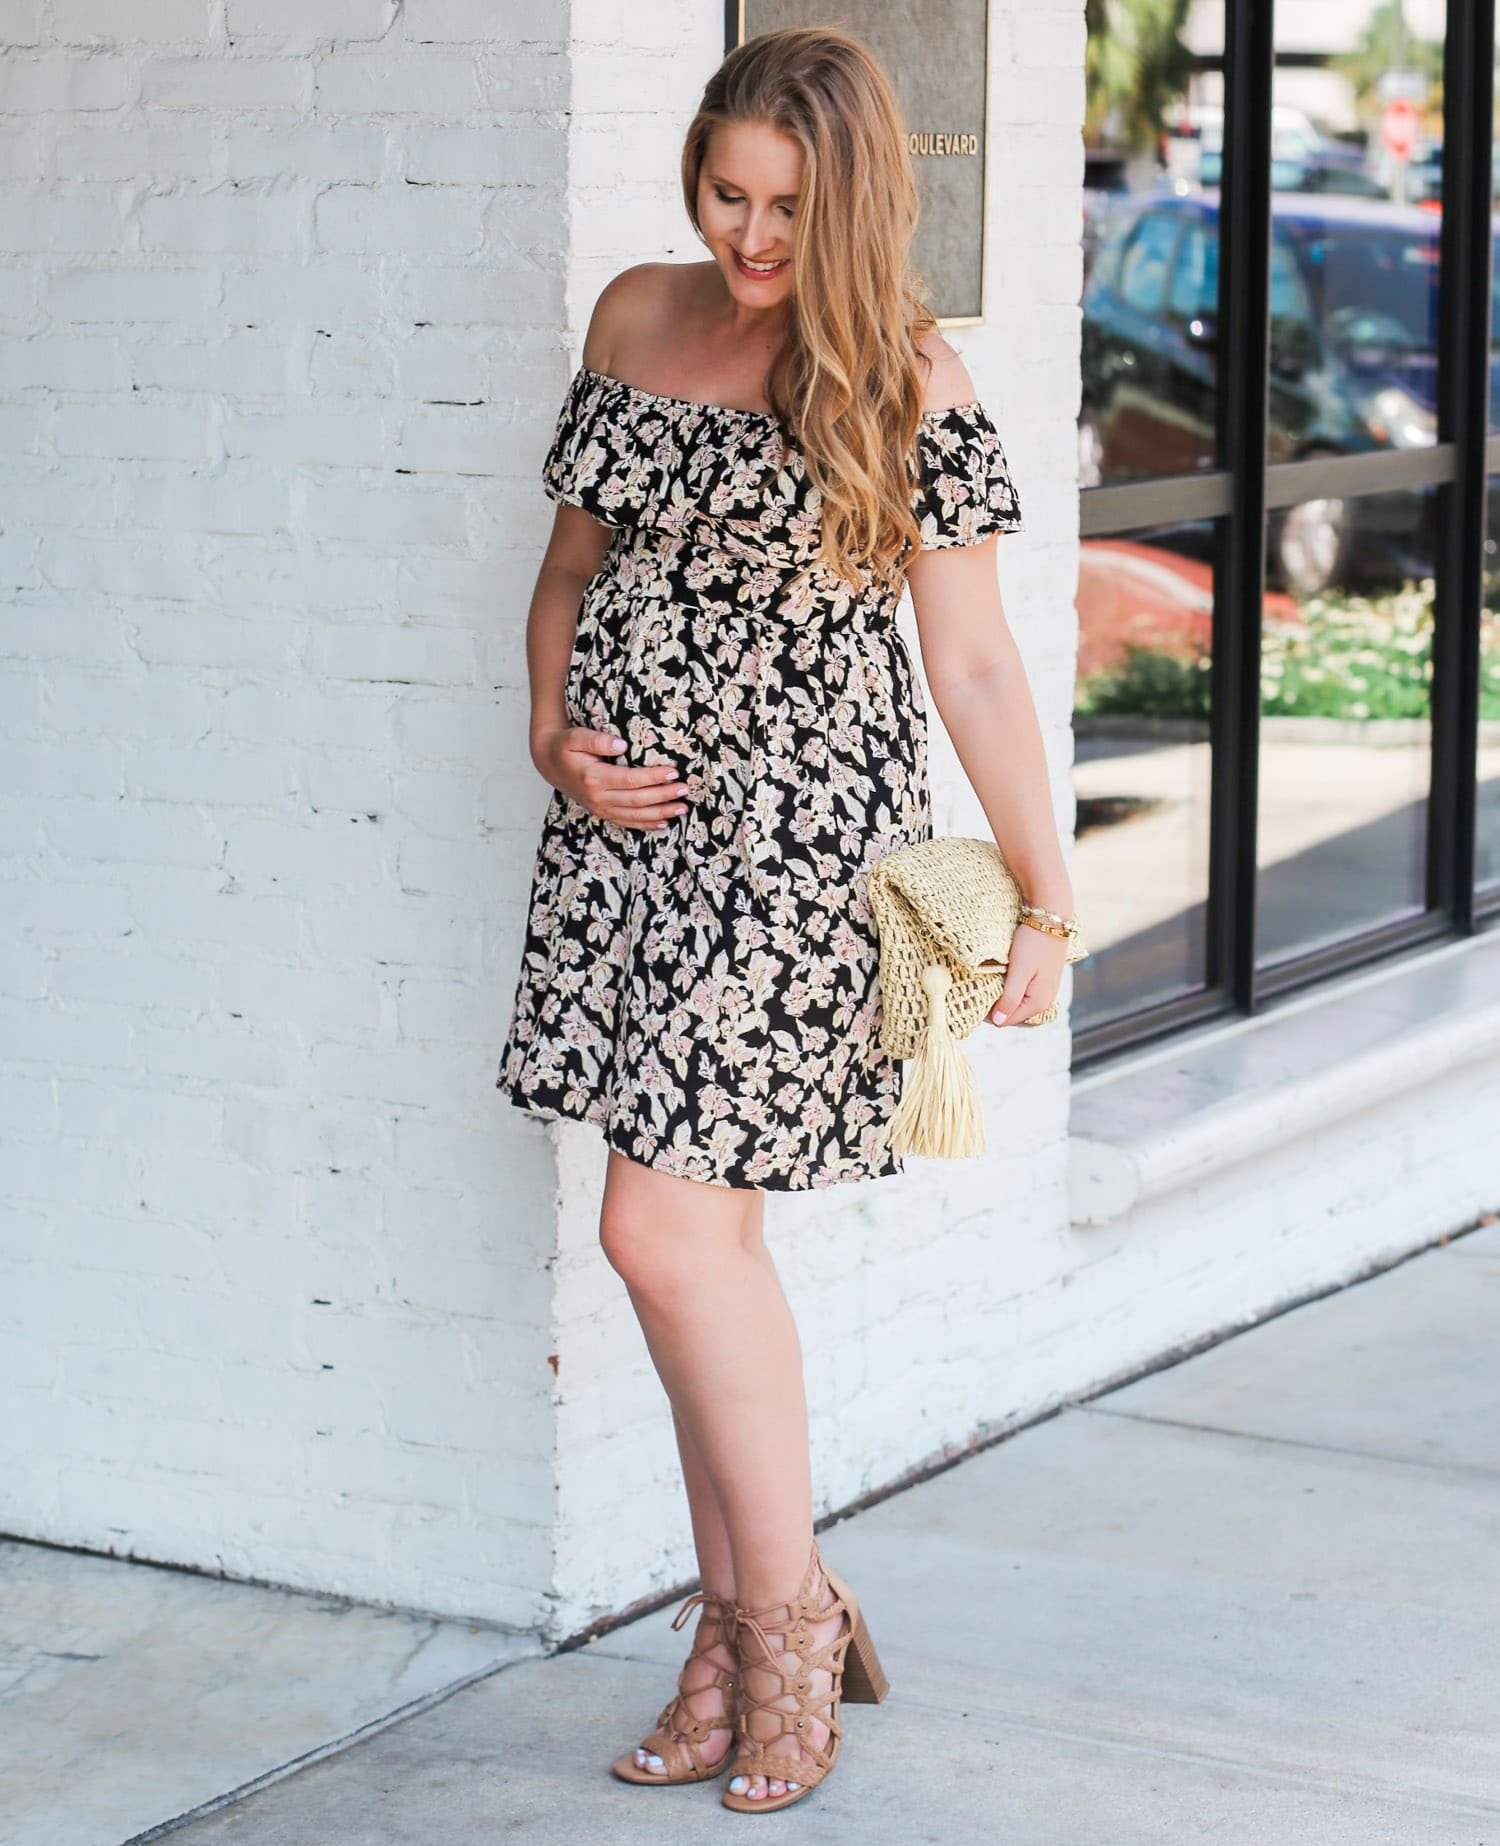 Loving this affordable floral dress for summer! It's non-maternity but still bump friendly! Can you believe this fit and flare sun dress is under $25, AND these gorgeous nude gladiator heeled sandals are also under $25? Click through this pin to see this cute summer maternity outfit idea styled by Orlando, Florida fashion blogger Ashley Brooke Nicholas! | Floral off the shoulder dress, straw clutch with tassel, raffia clutch, lace up sandals, lace up heels, cute summer heels, affordable outfit i